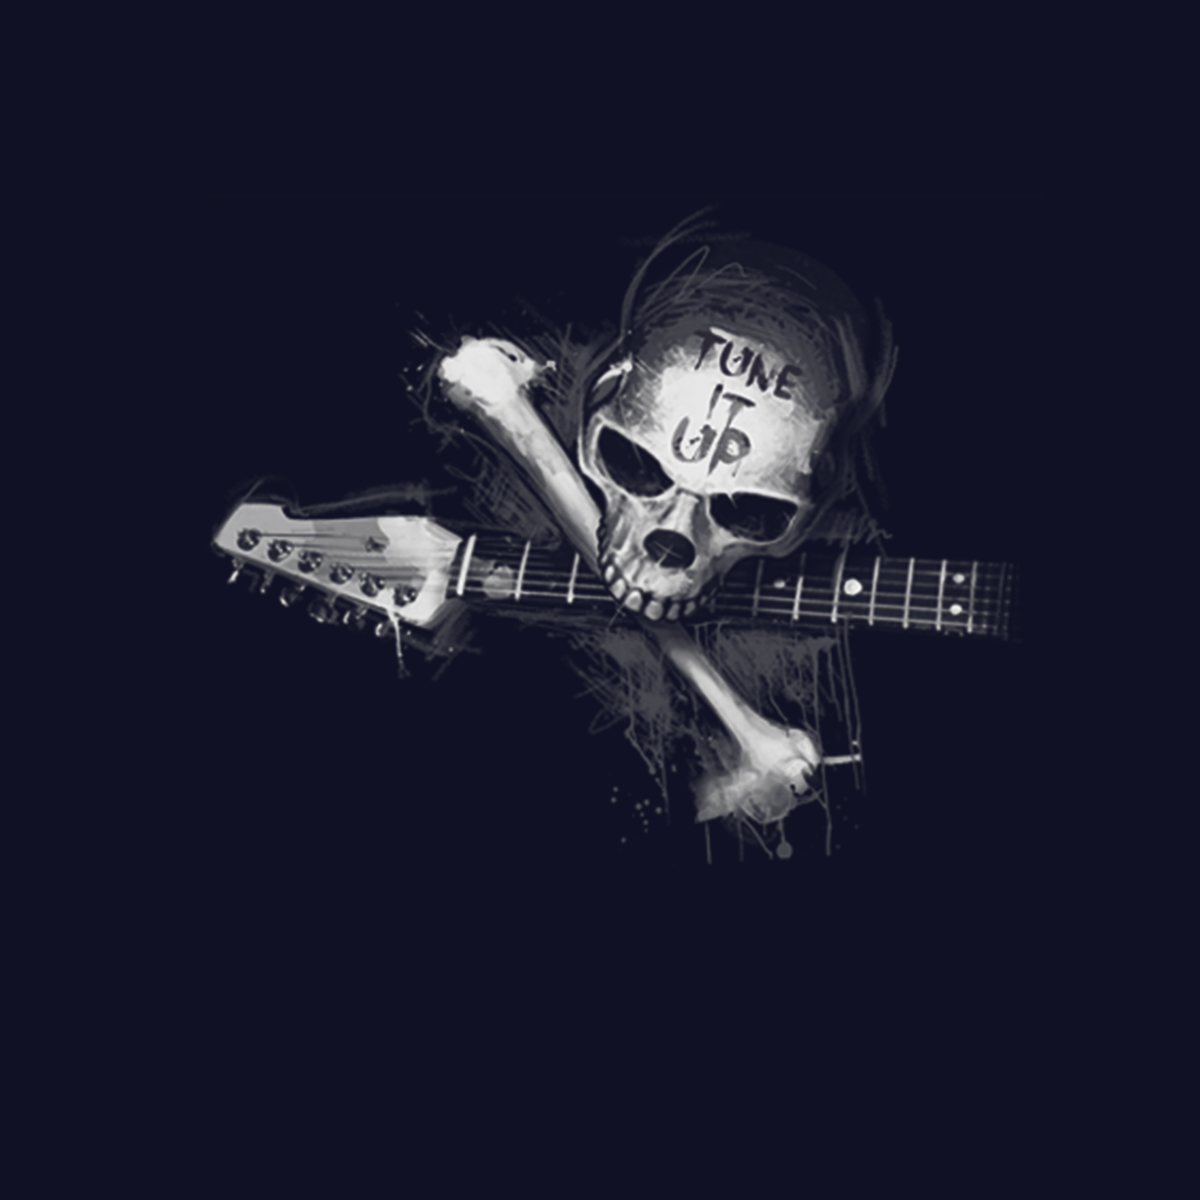 Skull Guitar Rock Music Womens T-shirt XS-3XL